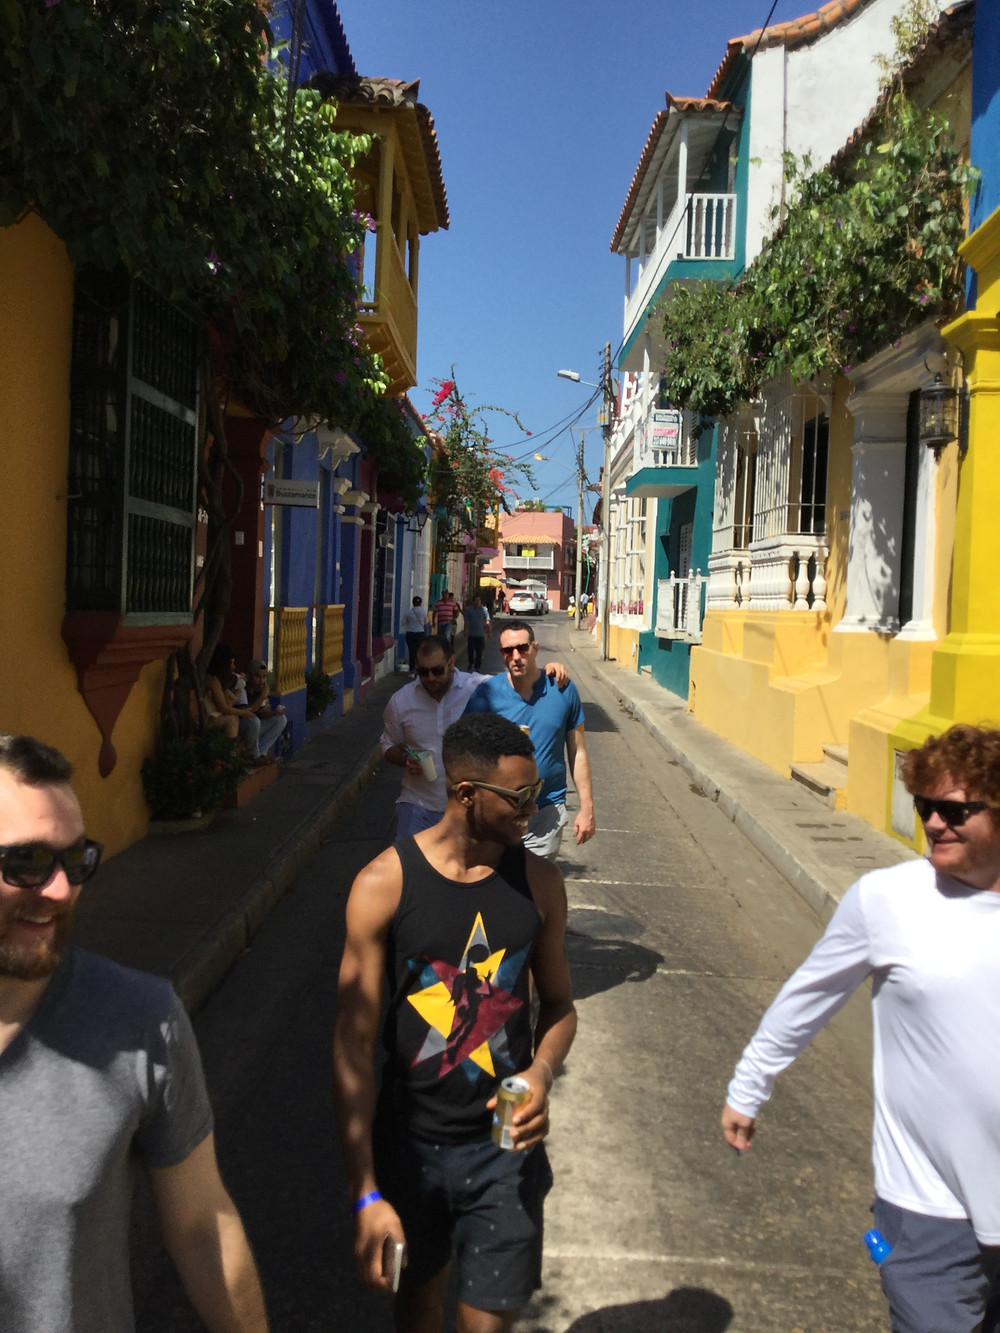 walking on the streets of Cartagena, Colombia 2018